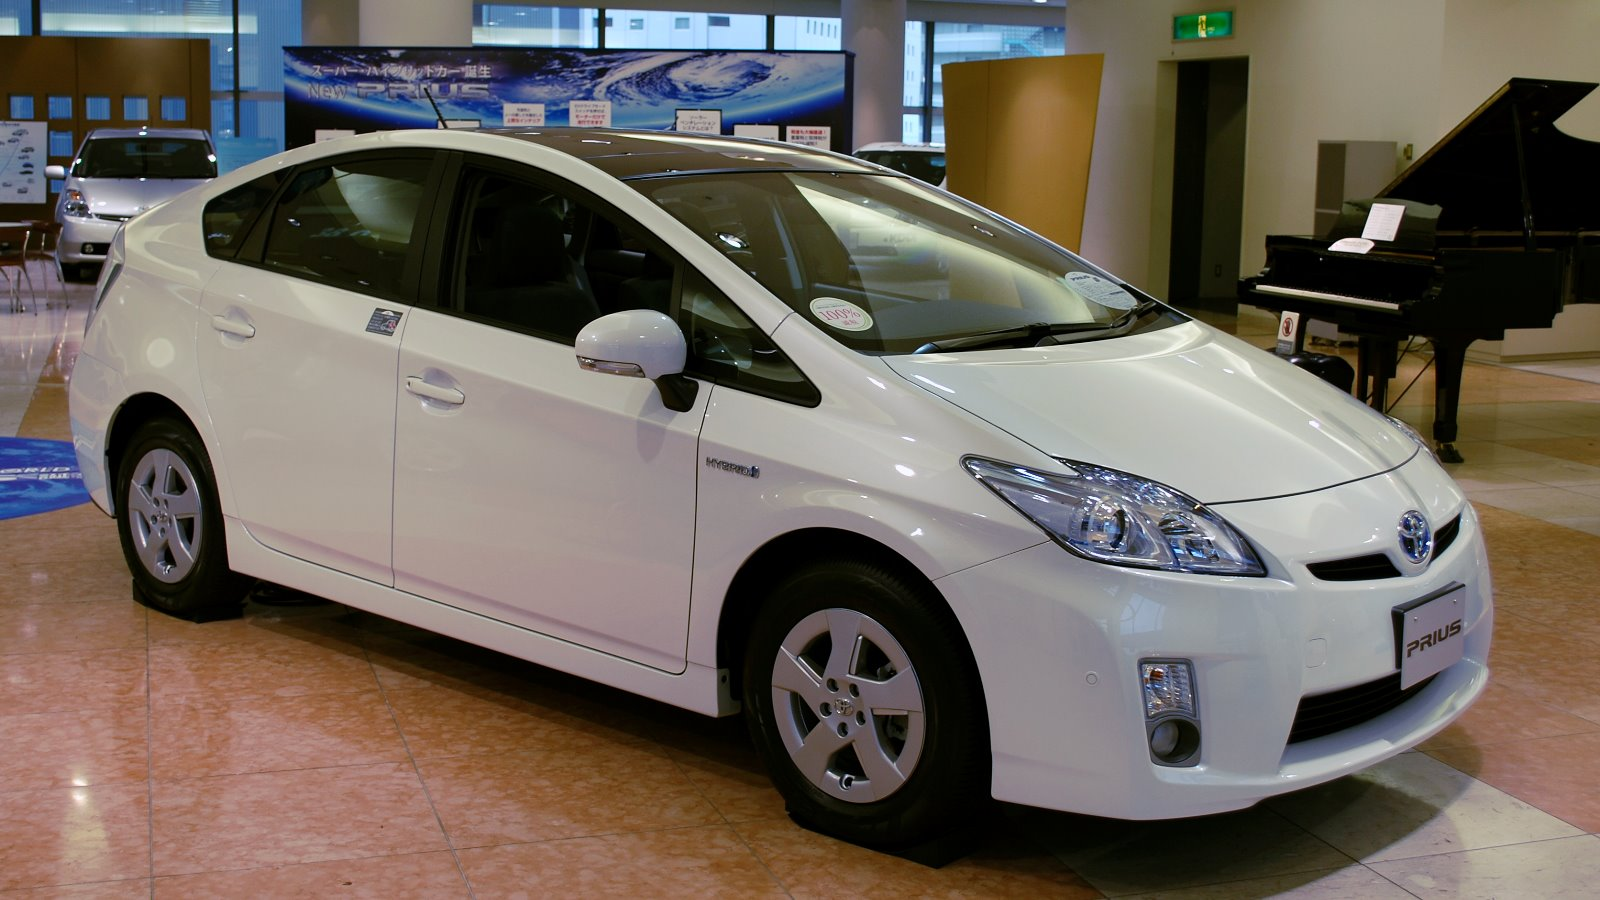 http://upload.wikimedia.org/wikipedia/commons/4/41/2009_Toyota_Prius_01.jpg